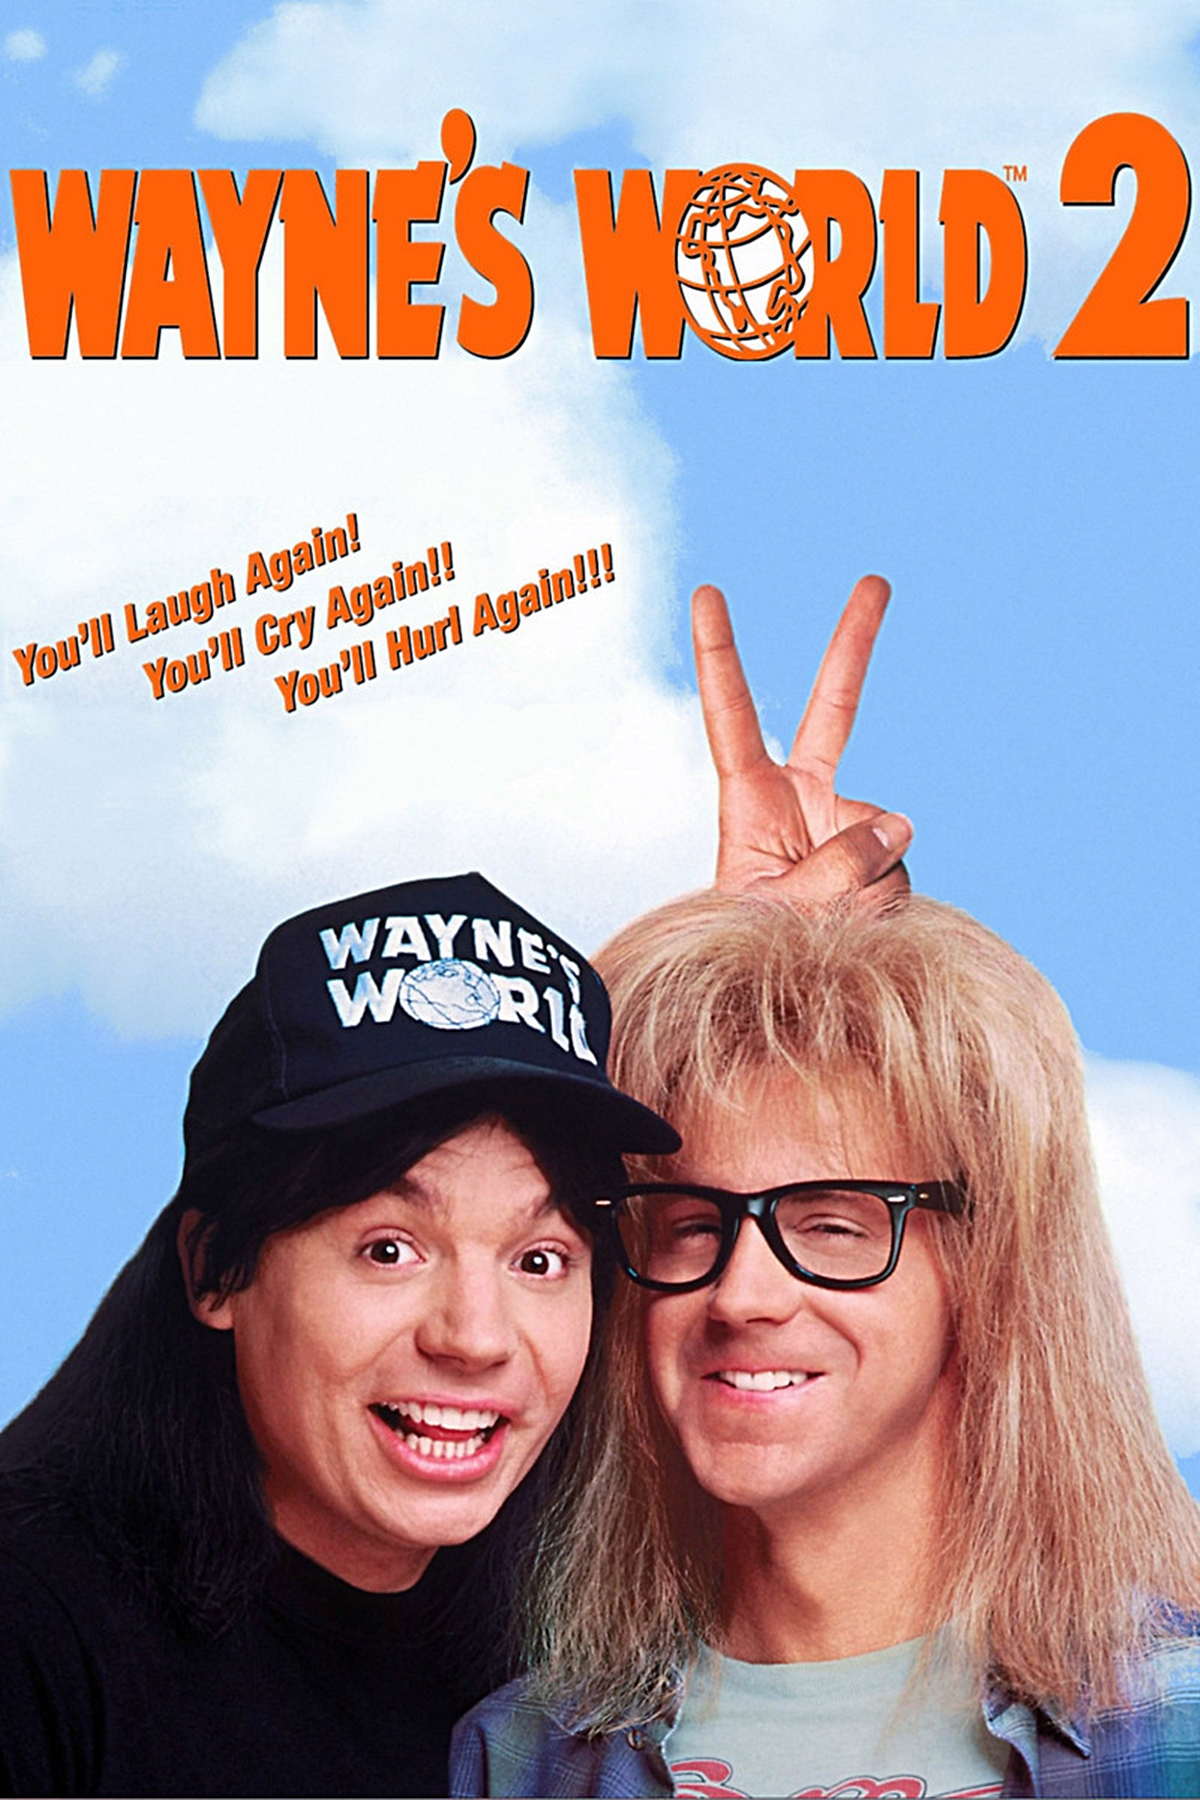 13 7 15 Things You May Not Have Realised About Wayne's World